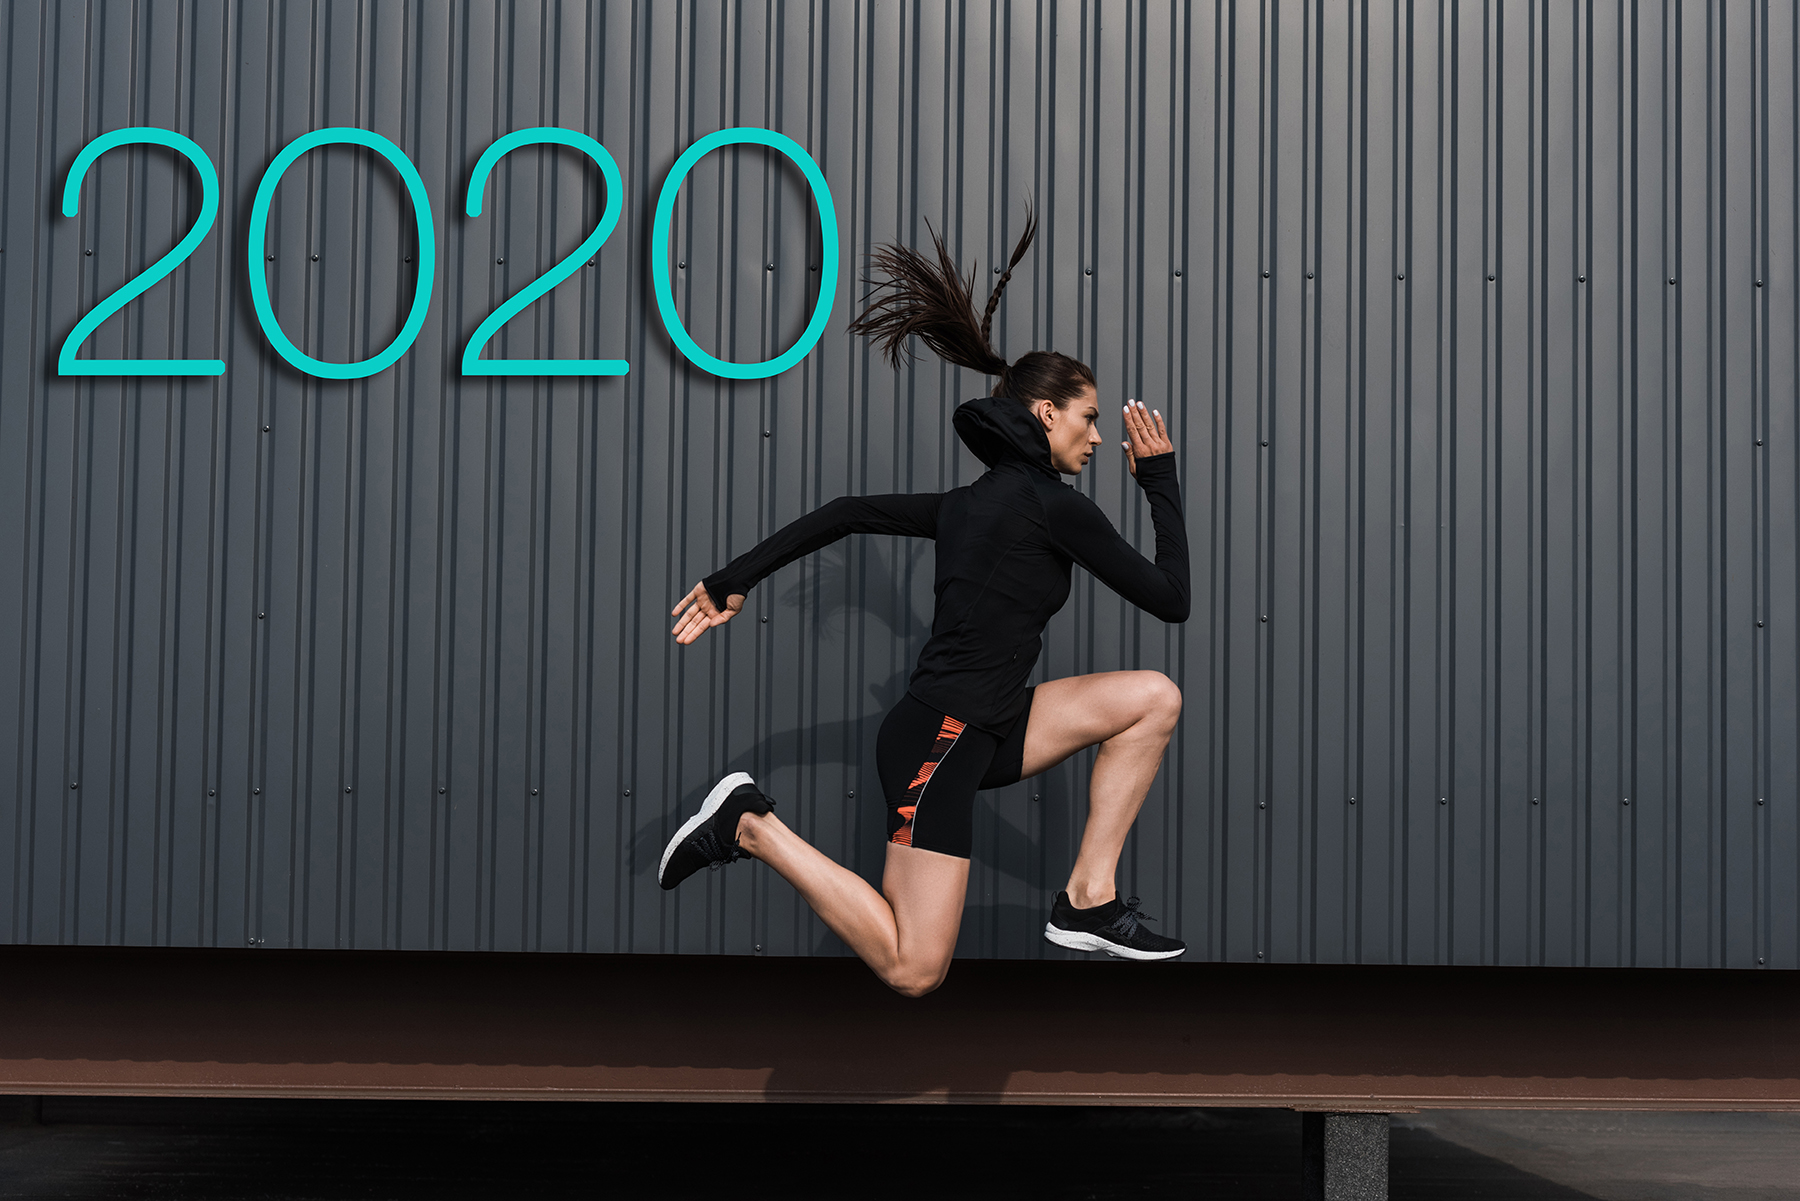 2020 Fitness Woman Running